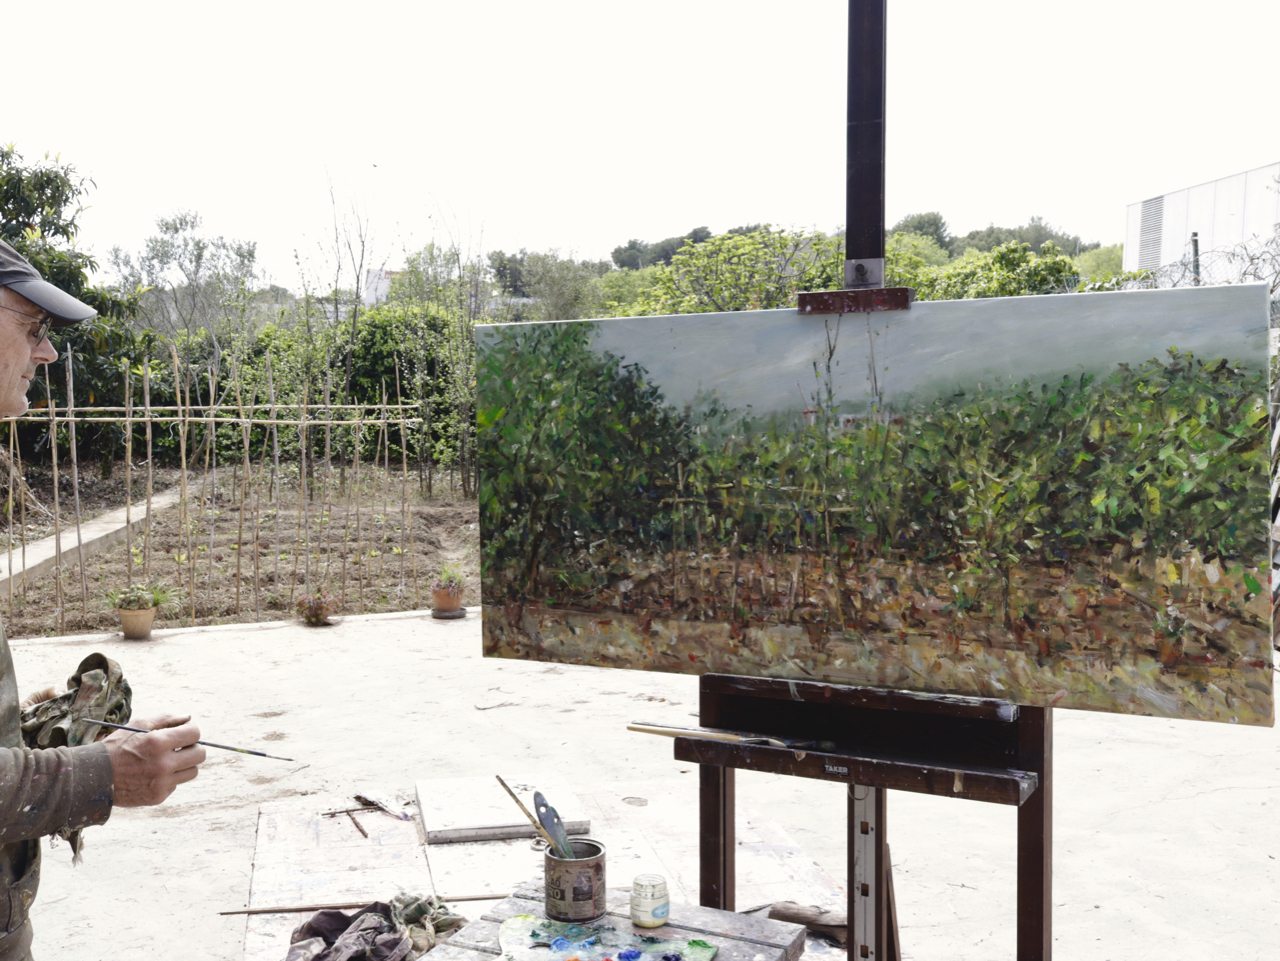 Painting in my garden March, 2020